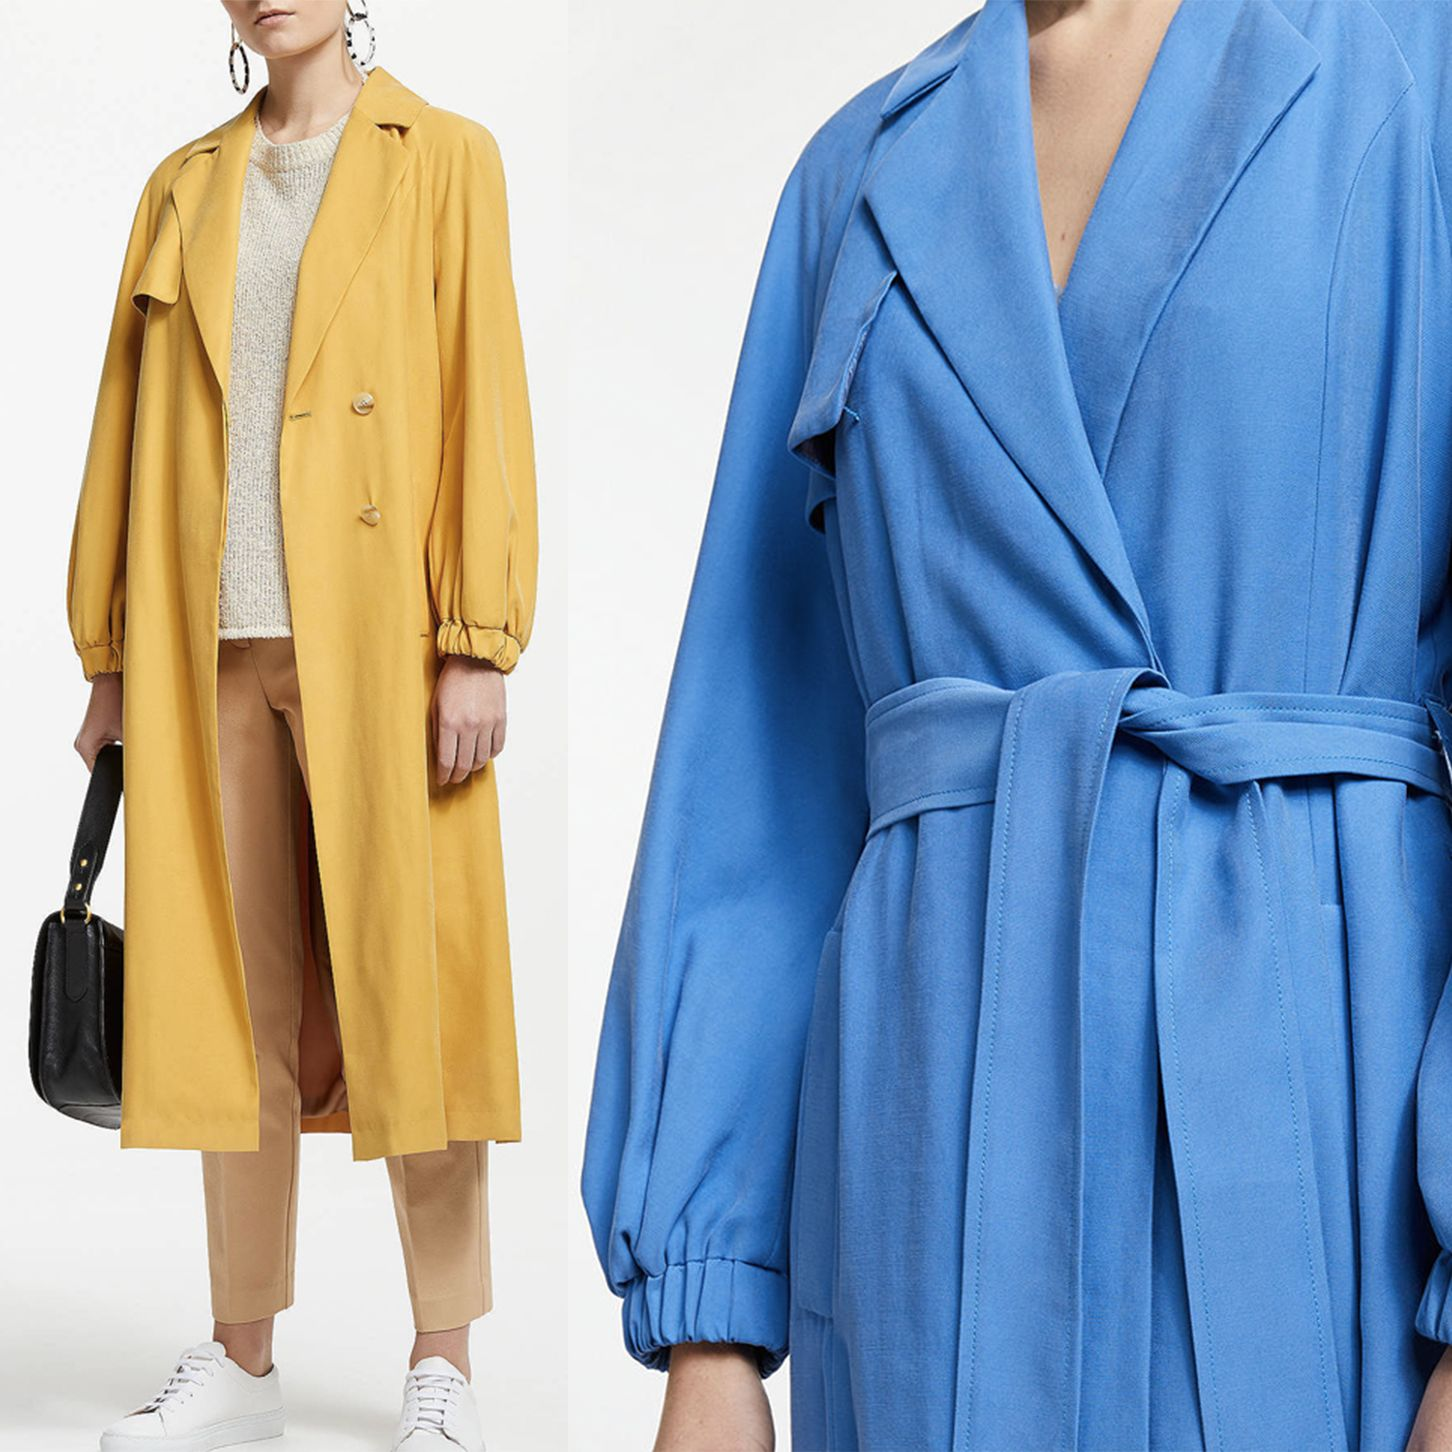 John Lewis & Partners is selling the perfect trench coat for spring